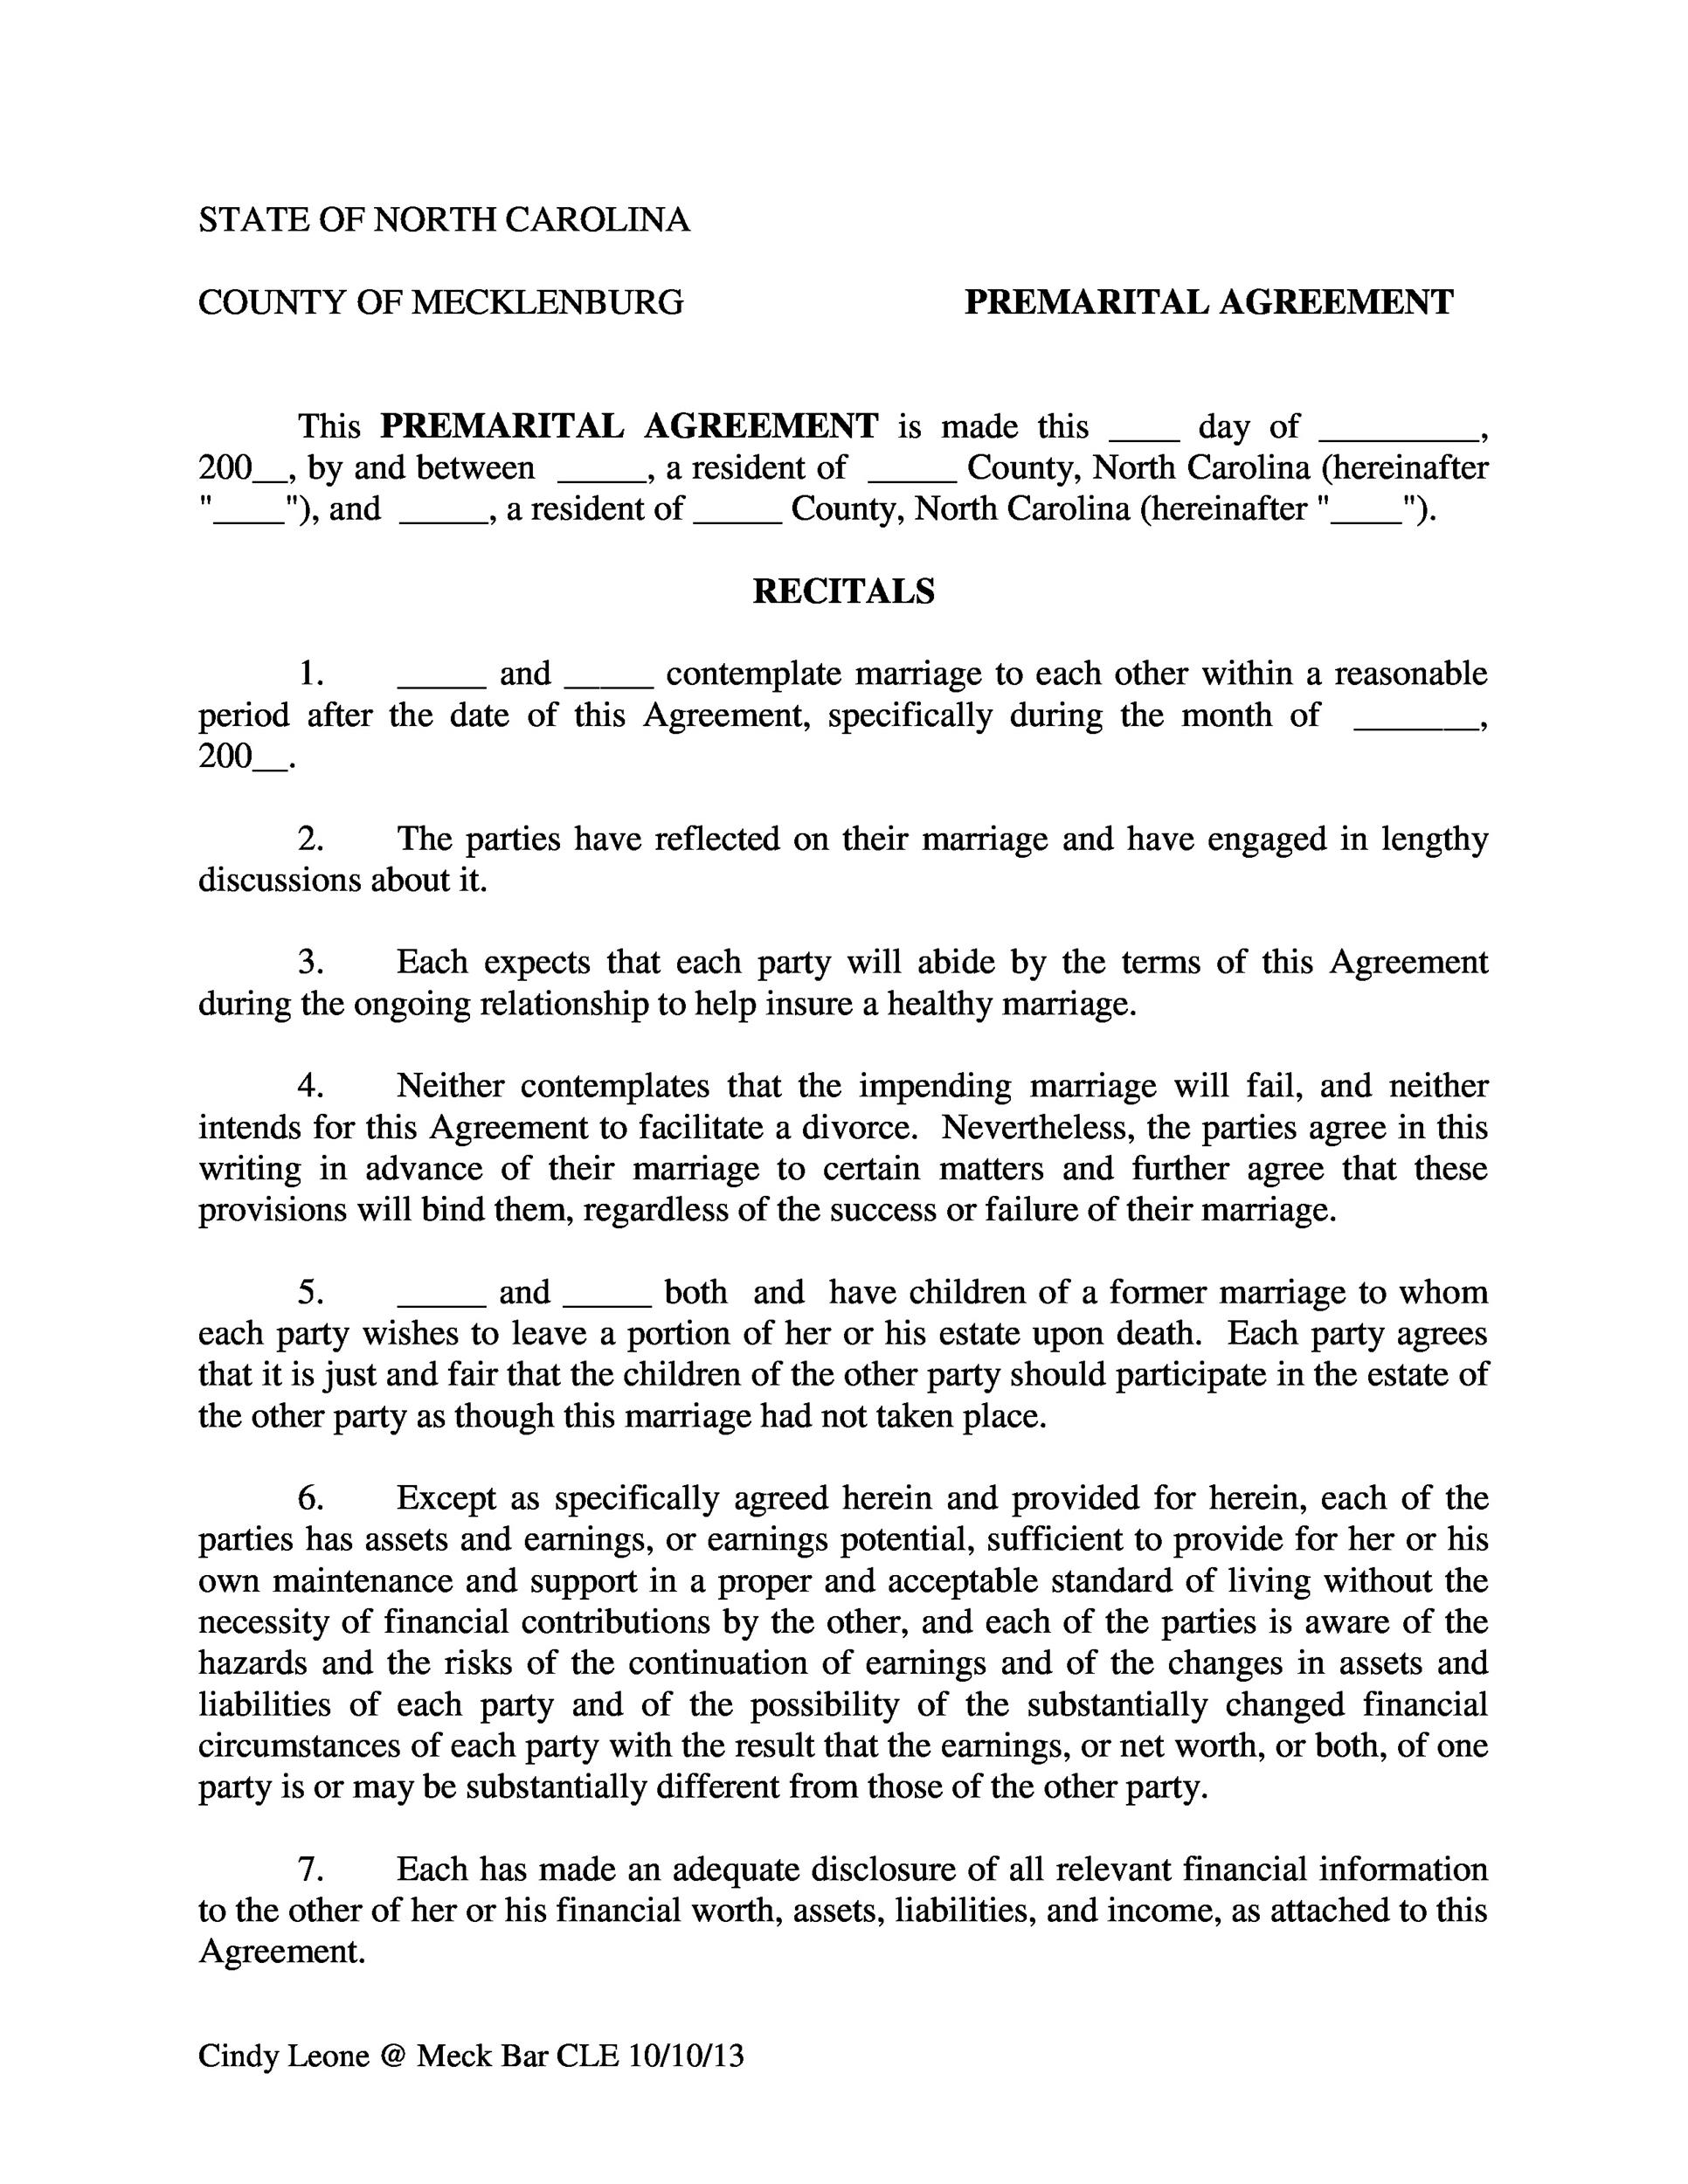 picture regarding Free Printable Prenuptial Agreement Form called 30+ Prenuptial Arrangement Samples Types ᐅ Template Lab